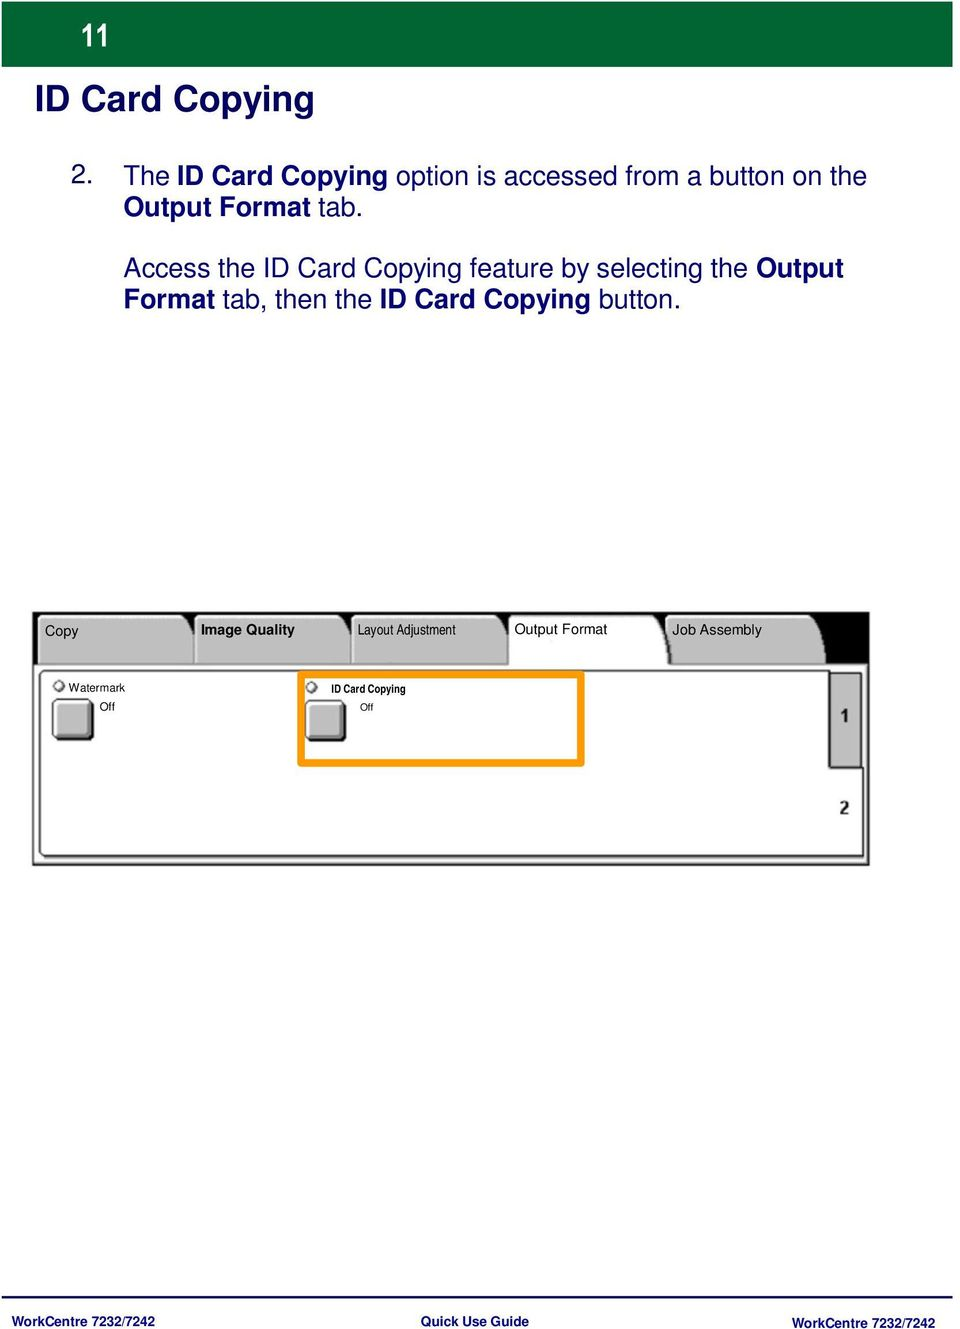 Access the ID Card Copying feature by selecting the Output Format tab, then